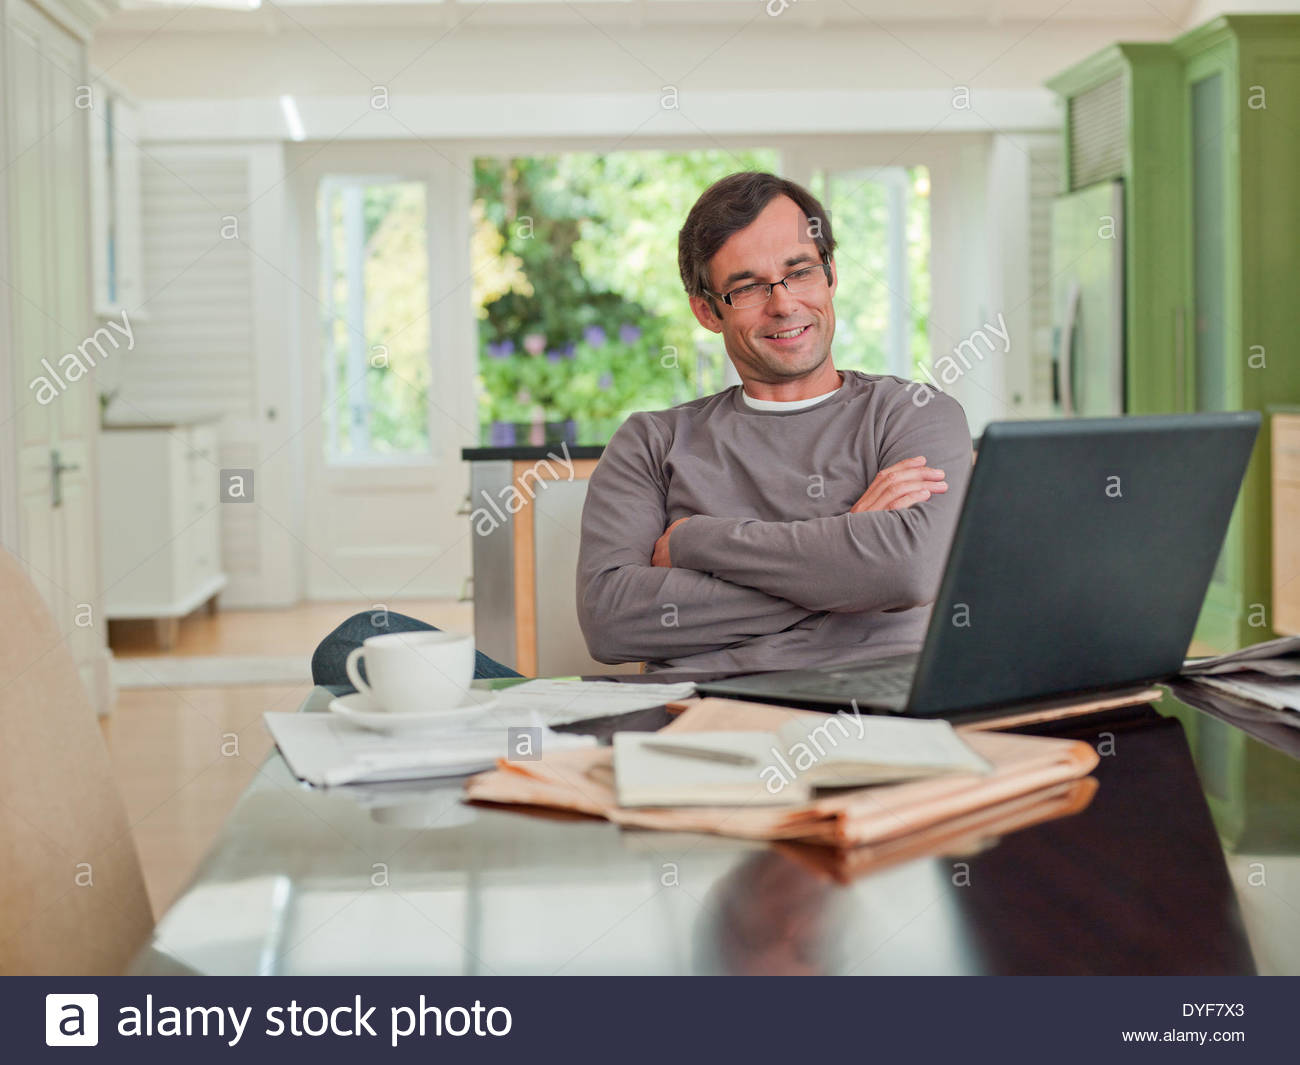 Man looking at laptop - Stock Image